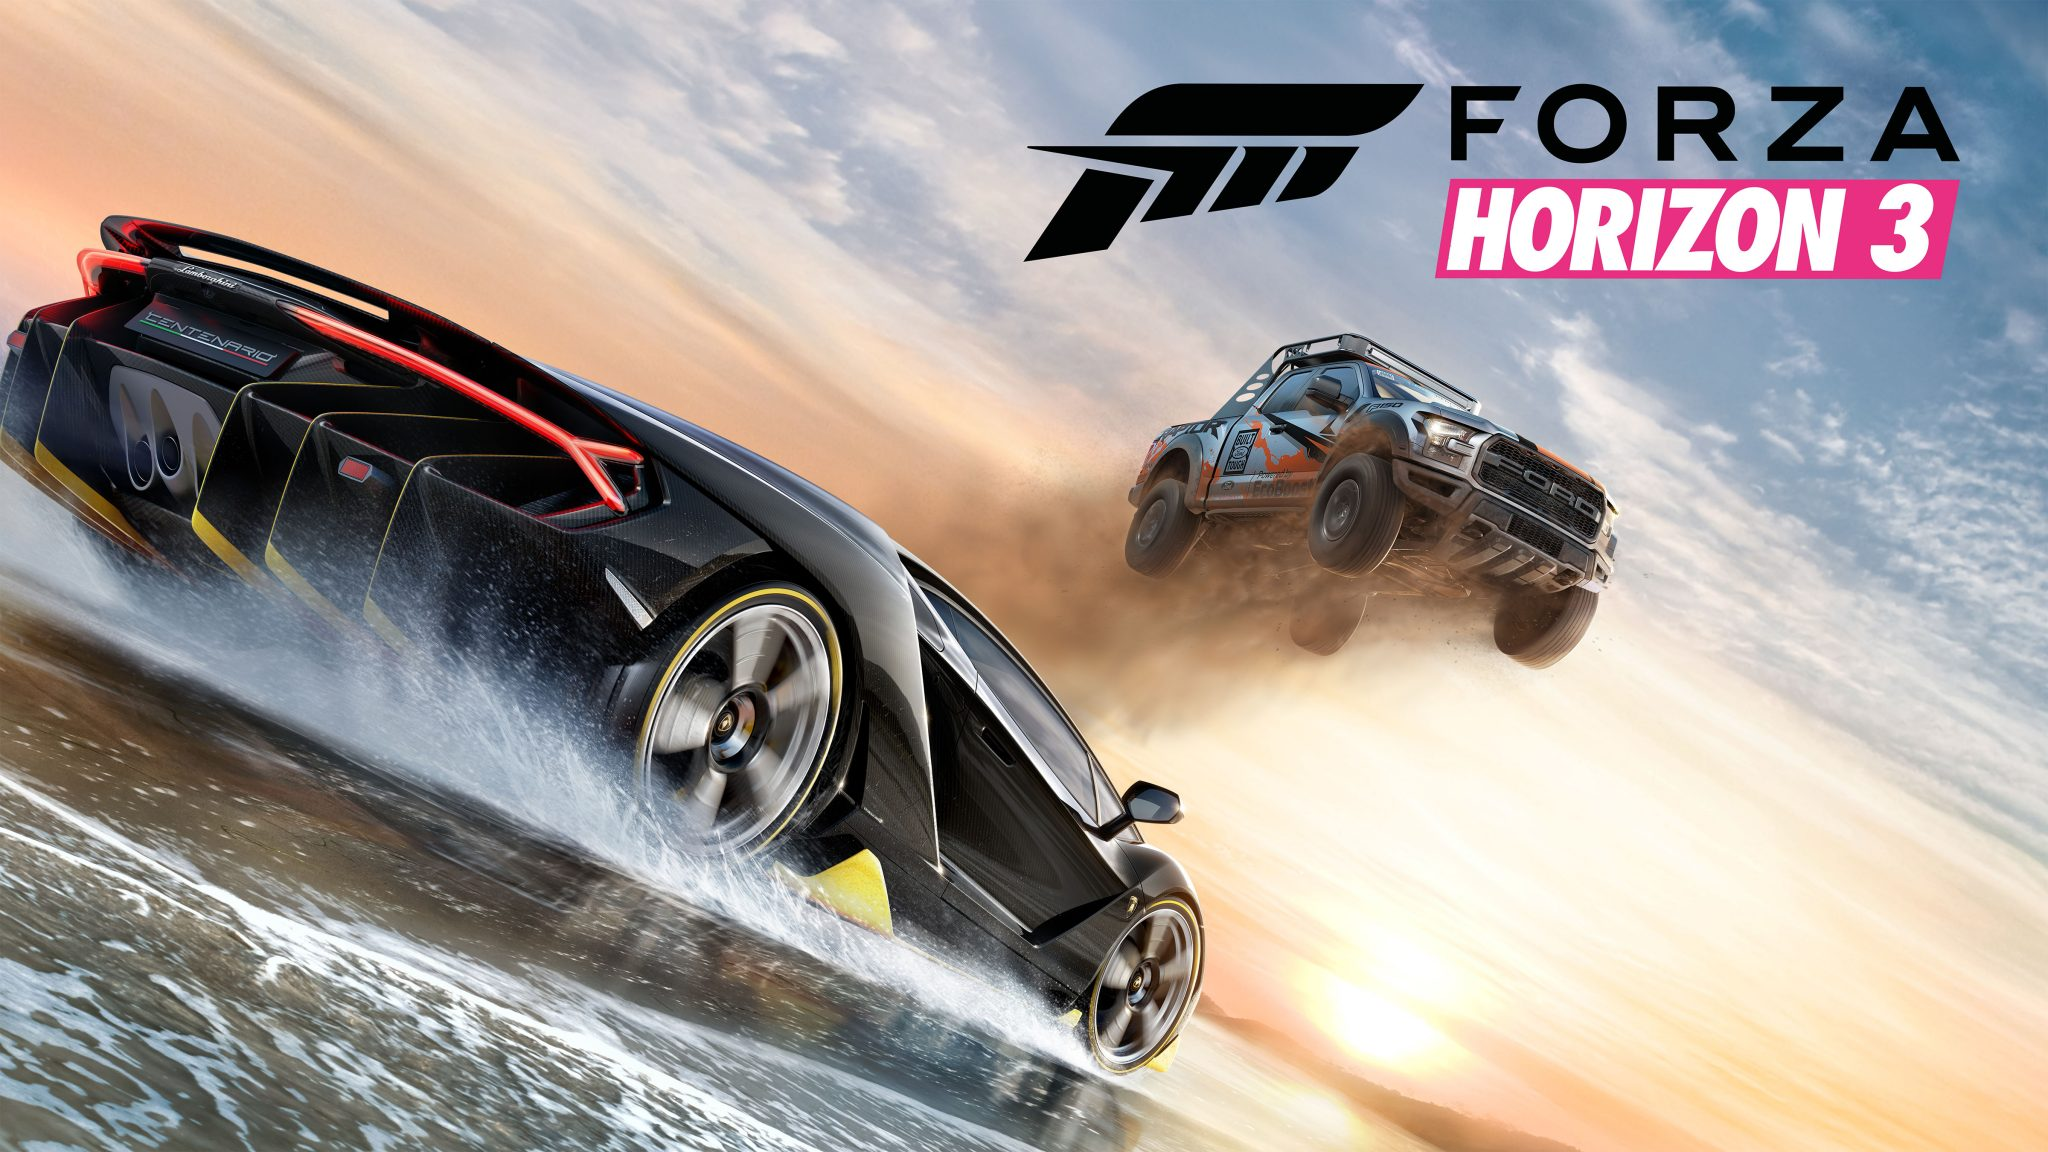 Forza Horizon 3 Now Runs at 4K on Xbox One X